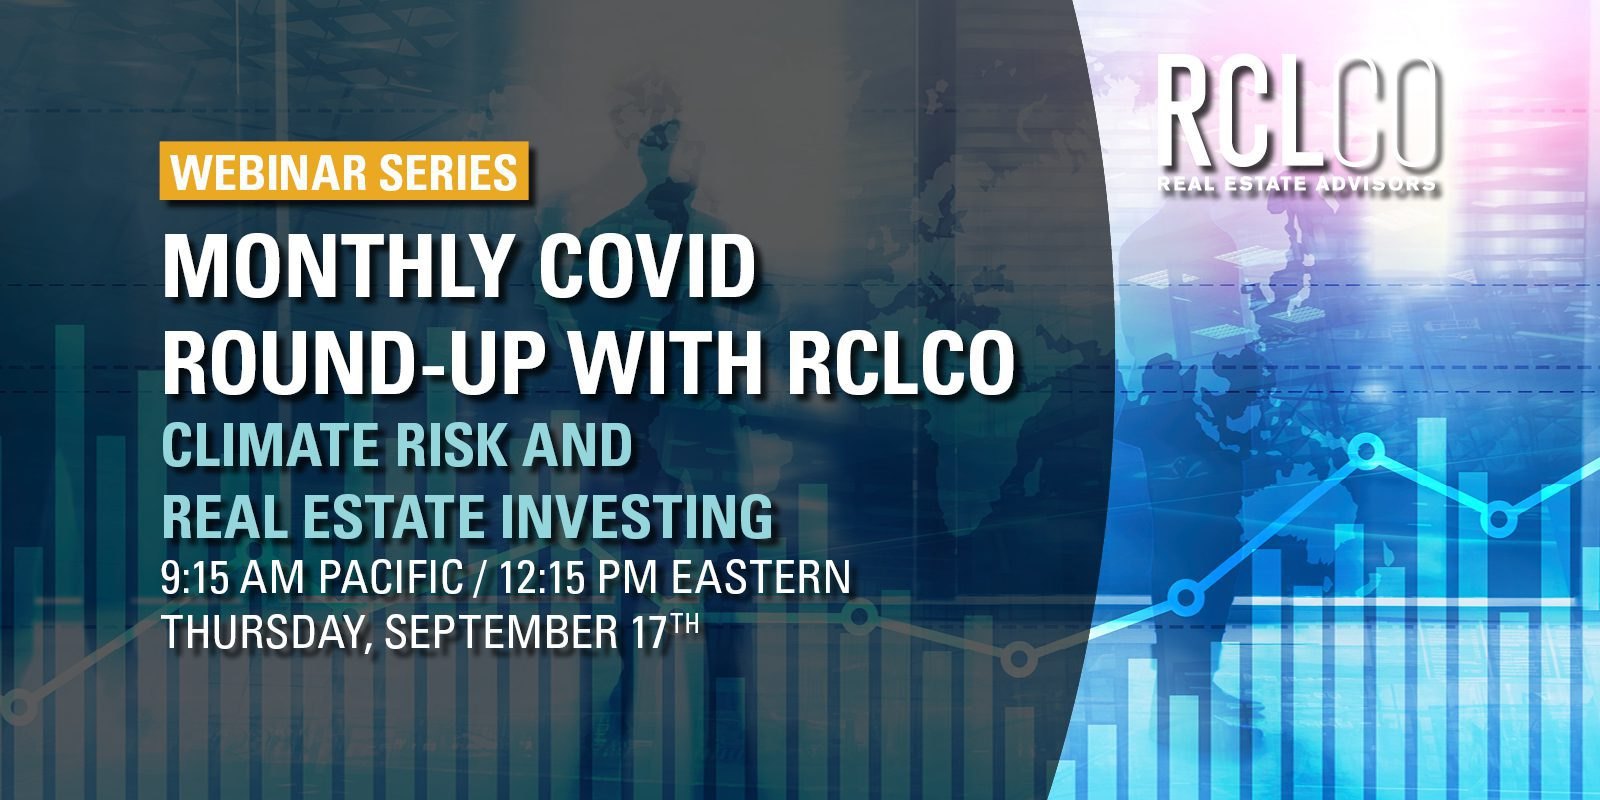 RCLCO COVID Round-Up: September 17, 2020